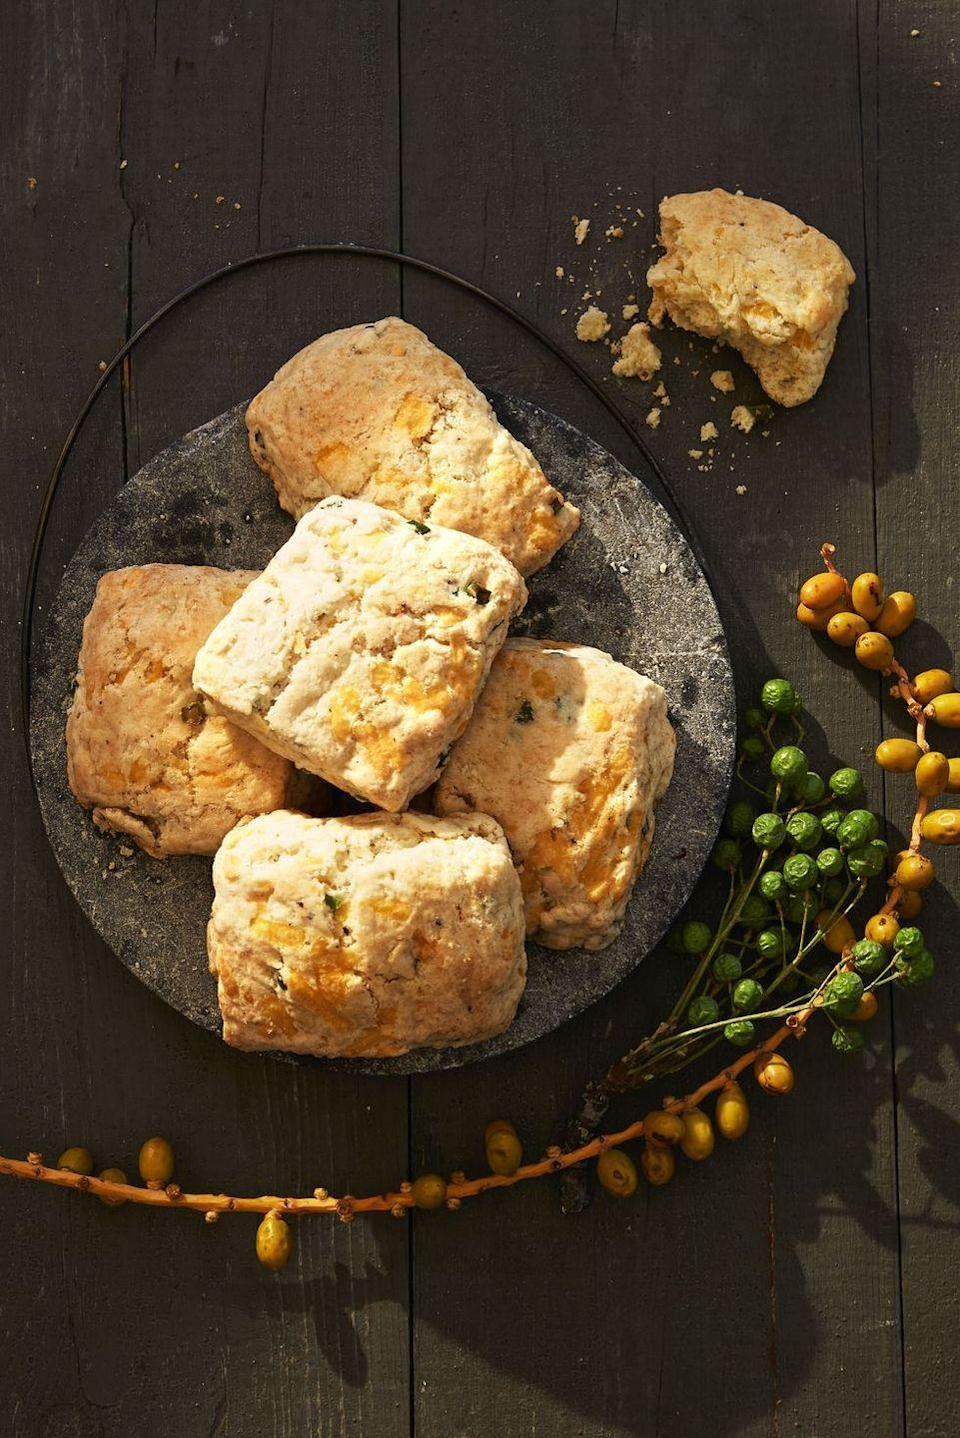 """<p>If you're craving some carbs on New Year's Day, then there's nothing better than these melt-in-your mouth apple and cheddar biscuits. </p><p><em><a href=""""https://www.goodhousekeeping.com/food-recipes/a41104/fluffy-apple-cheddar-biscuits-recipe/"""" rel=""""nofollow noopener"""" target=""""_blank"""" data-ylk=""""slk:Get the recipe for Apple Cheddar Biscuits »"""" class=""""link rapid-noclick-resp"""">Get the recipe for Apple Cheddar Biscuits »</a></em></p>"""